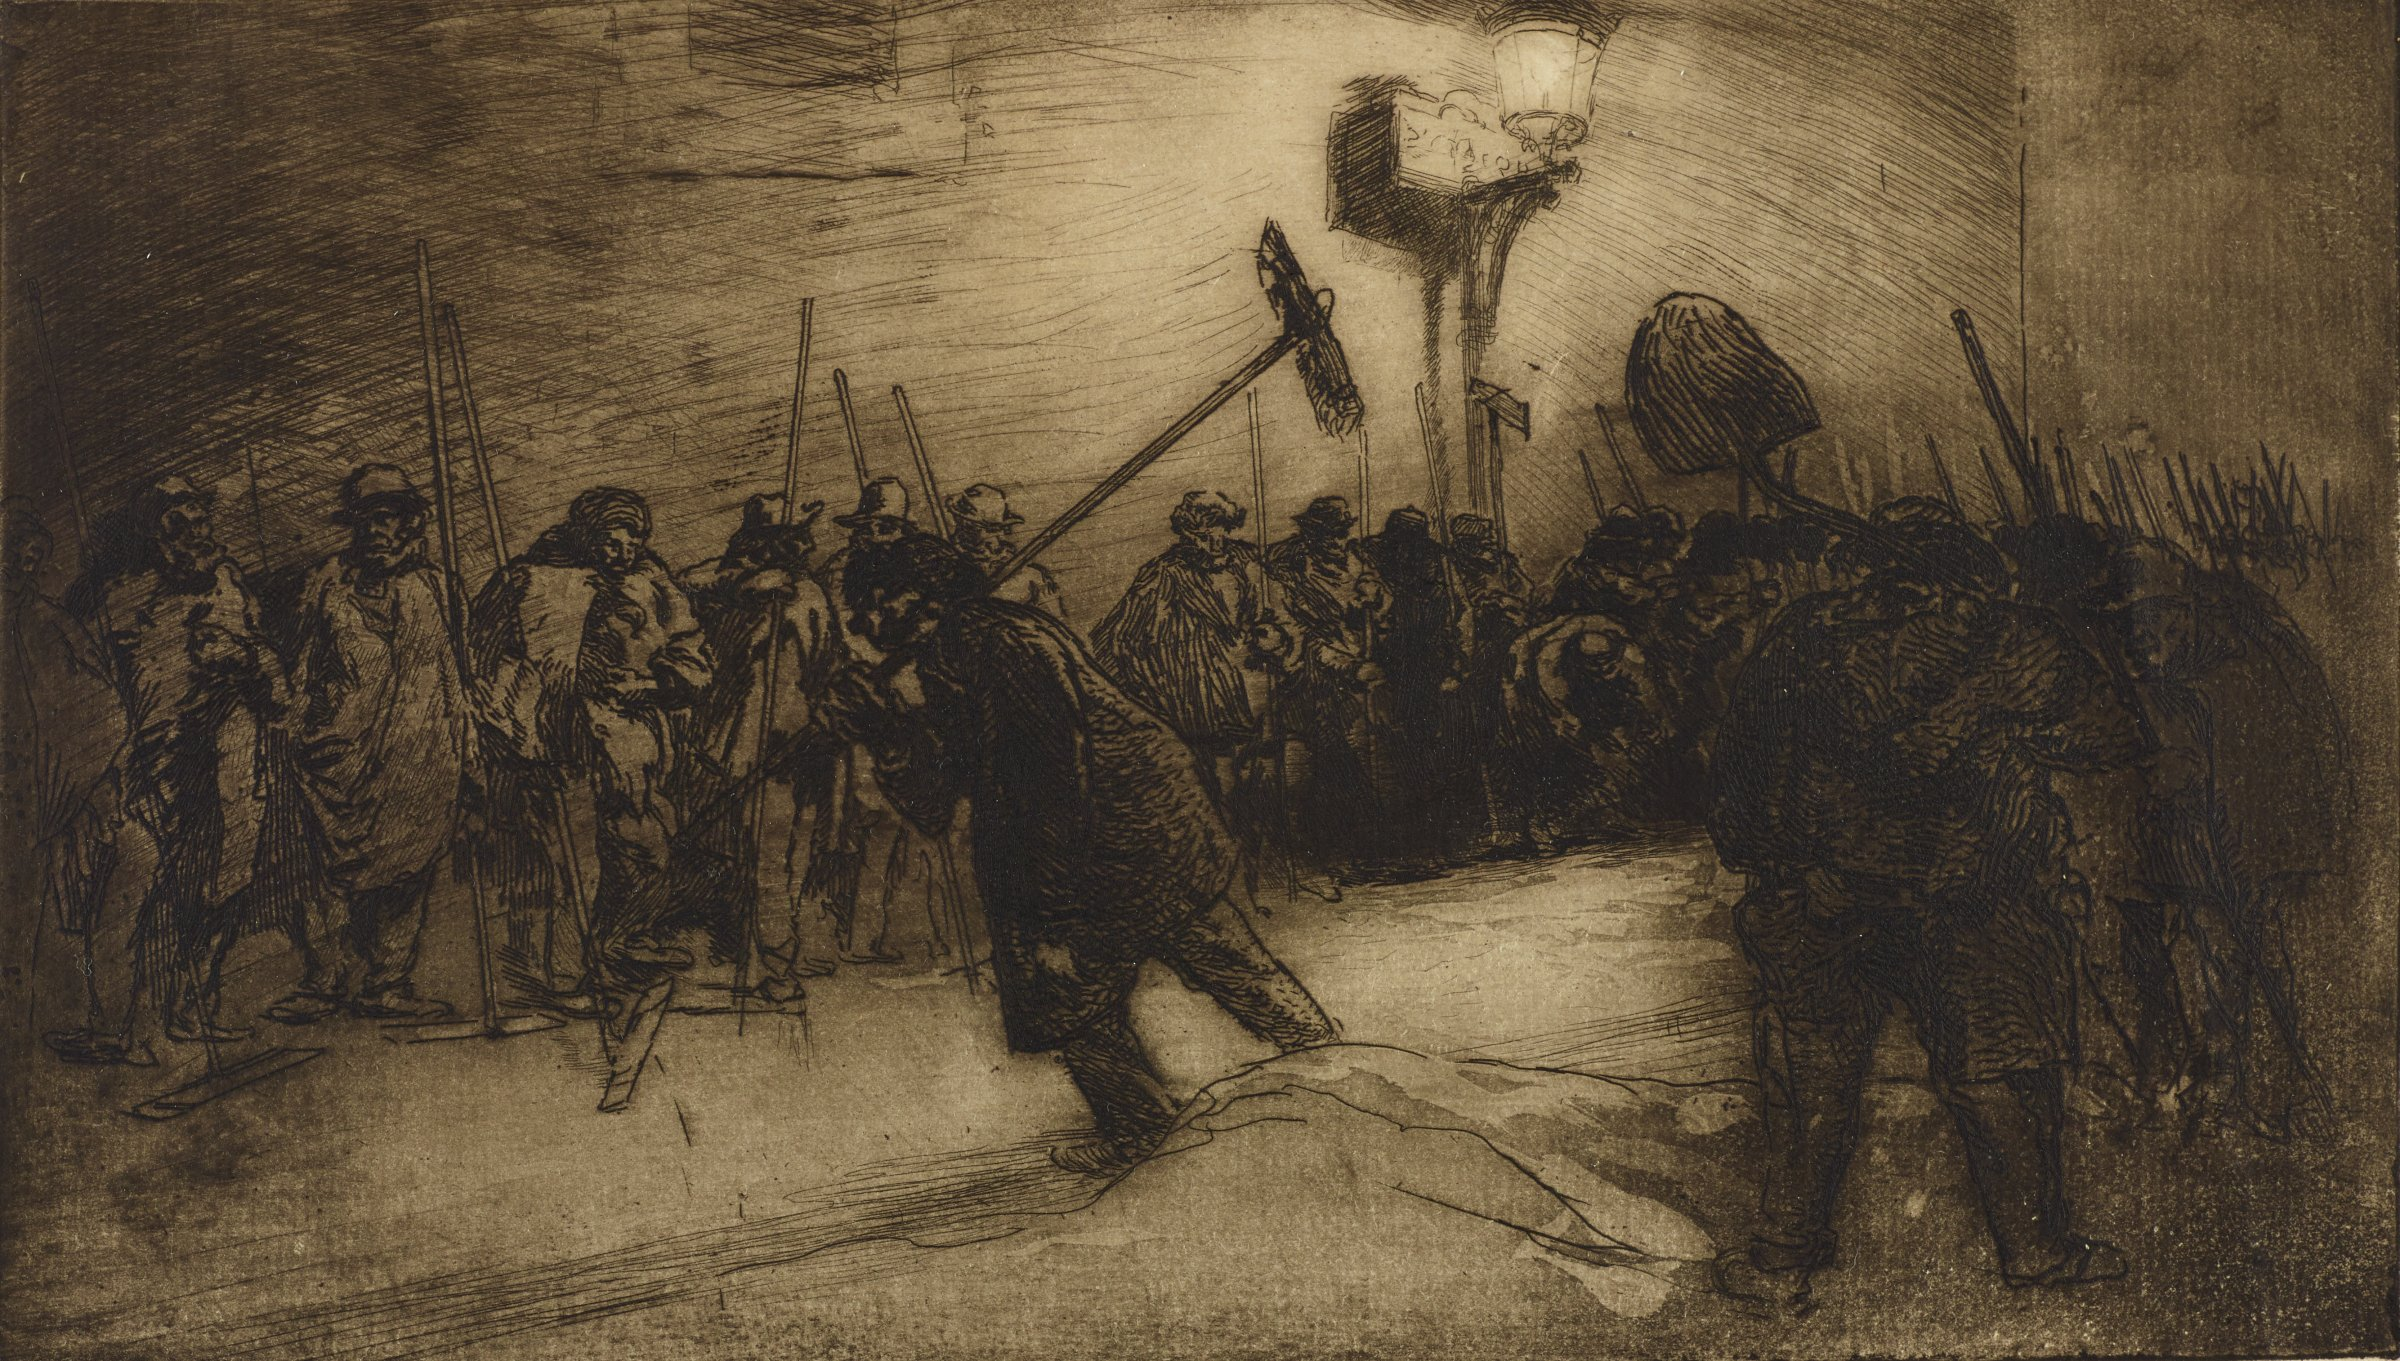 Men with shovels and brooms line the street. A single man walks through the middle of the crowd holding a broom over his shoulder.